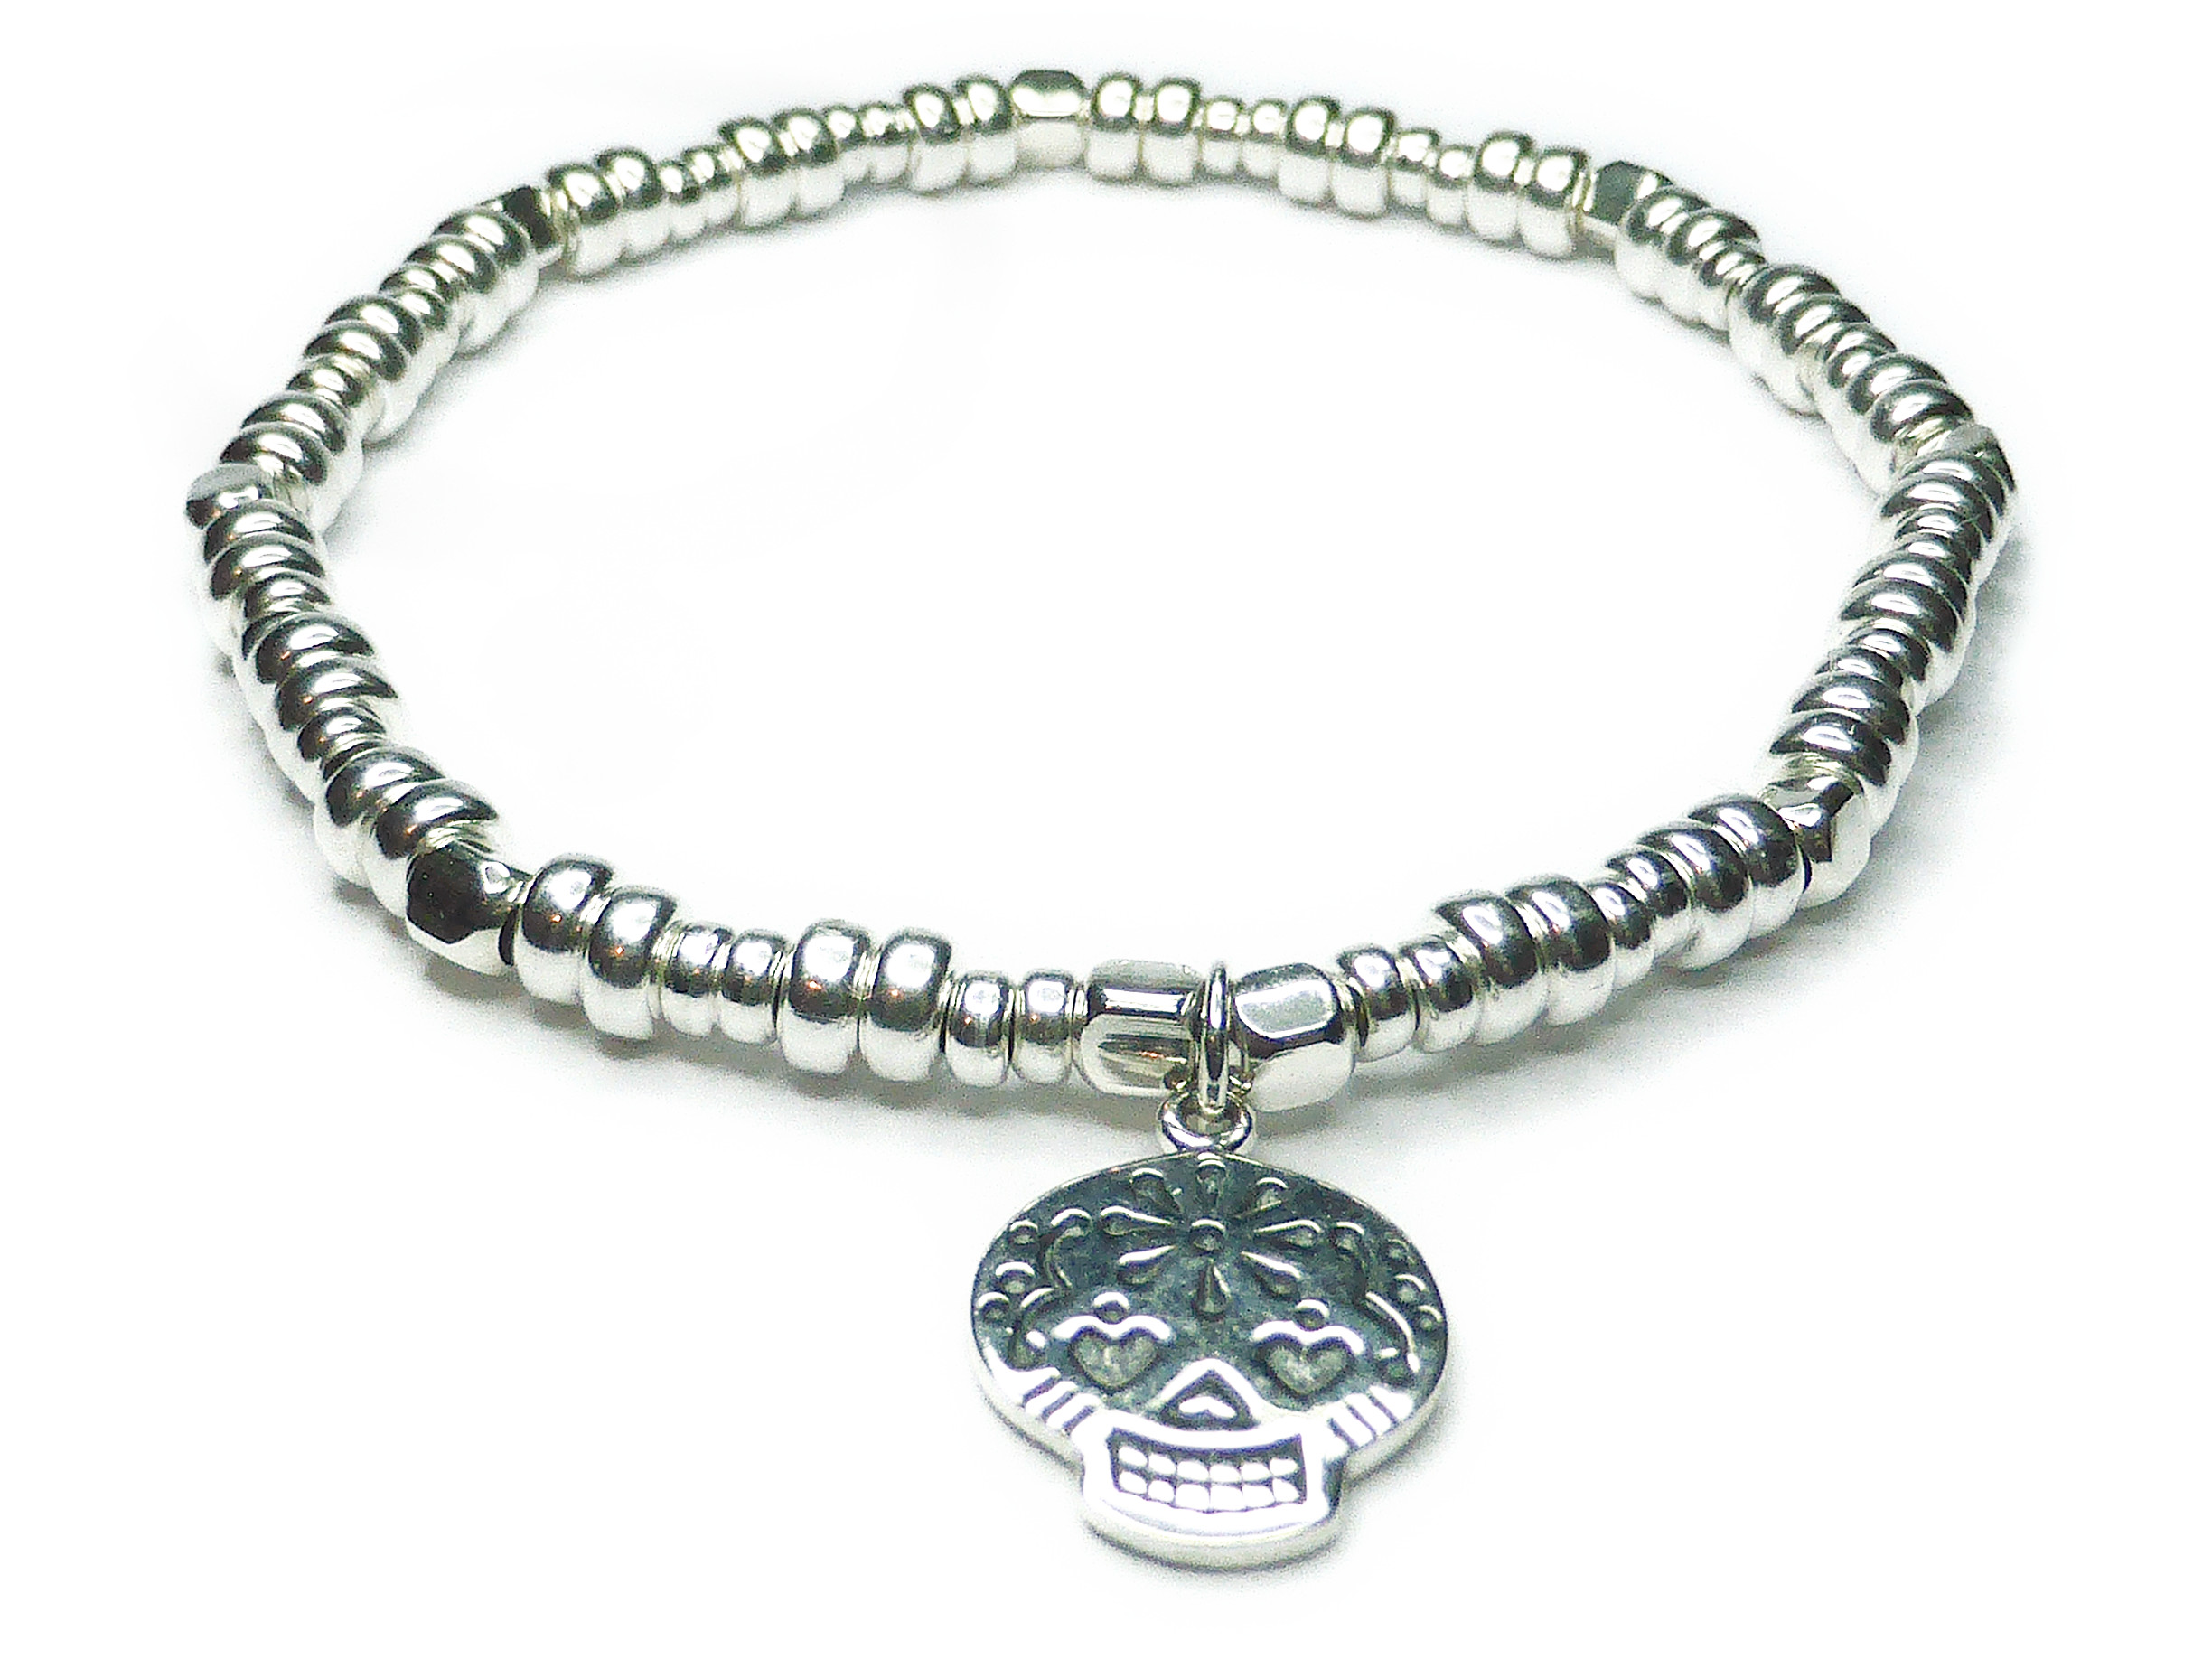 Sterling Silver Bolt Bracelet with Sugar Skull Charm from Jacy & Jools